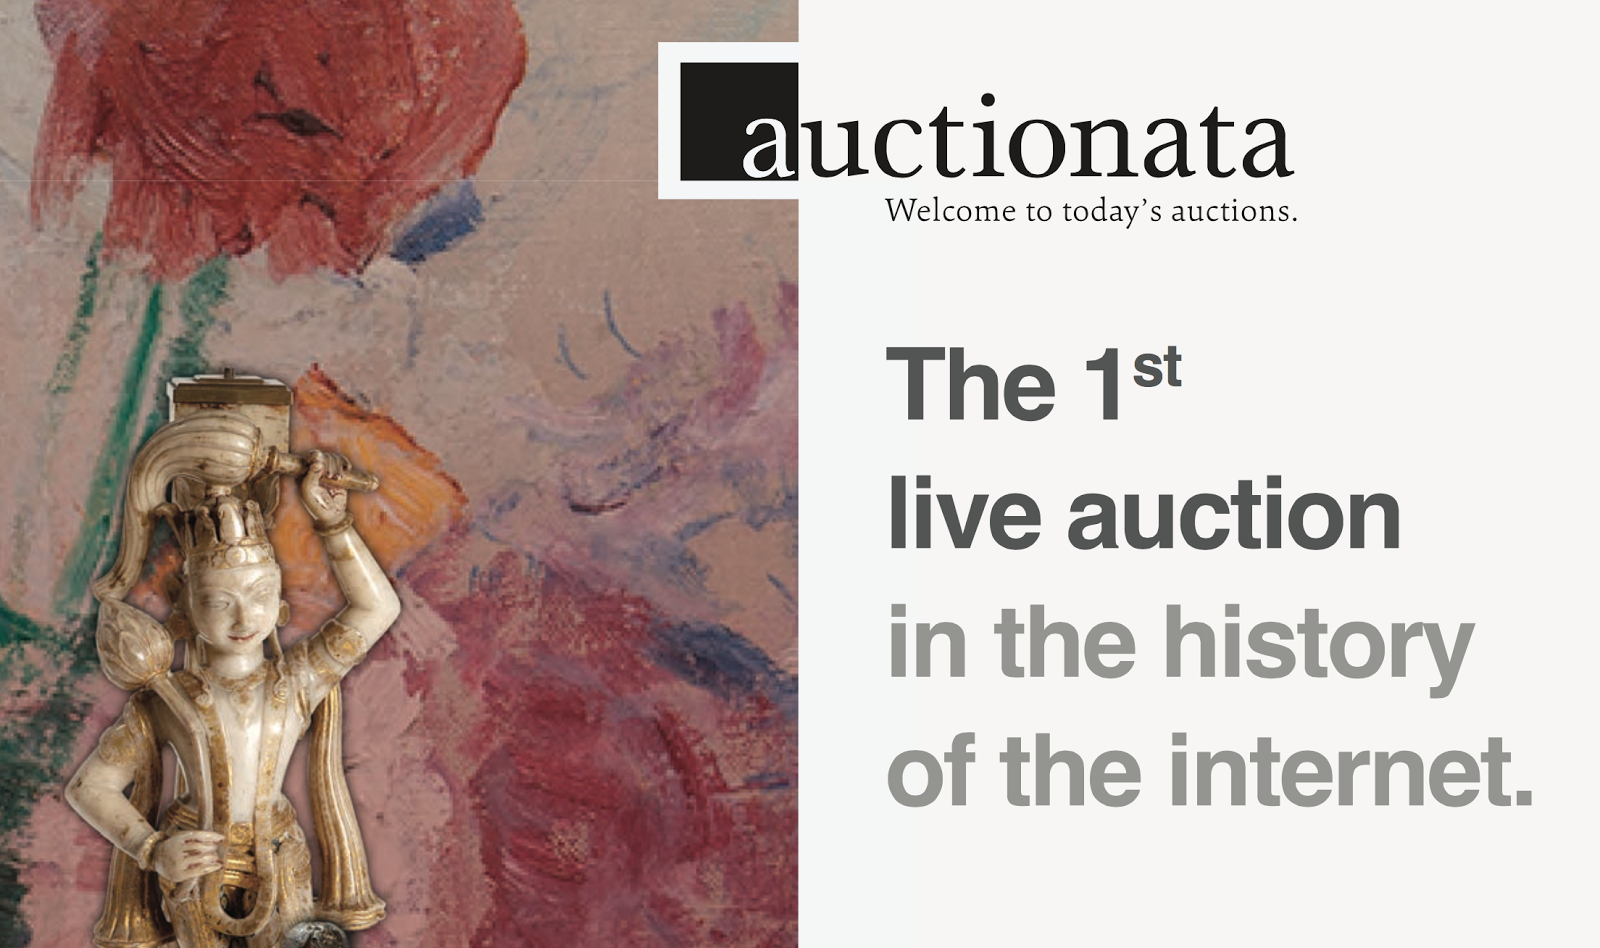 2012 Auctionata launch was NOT 1st Live Auction on Internet